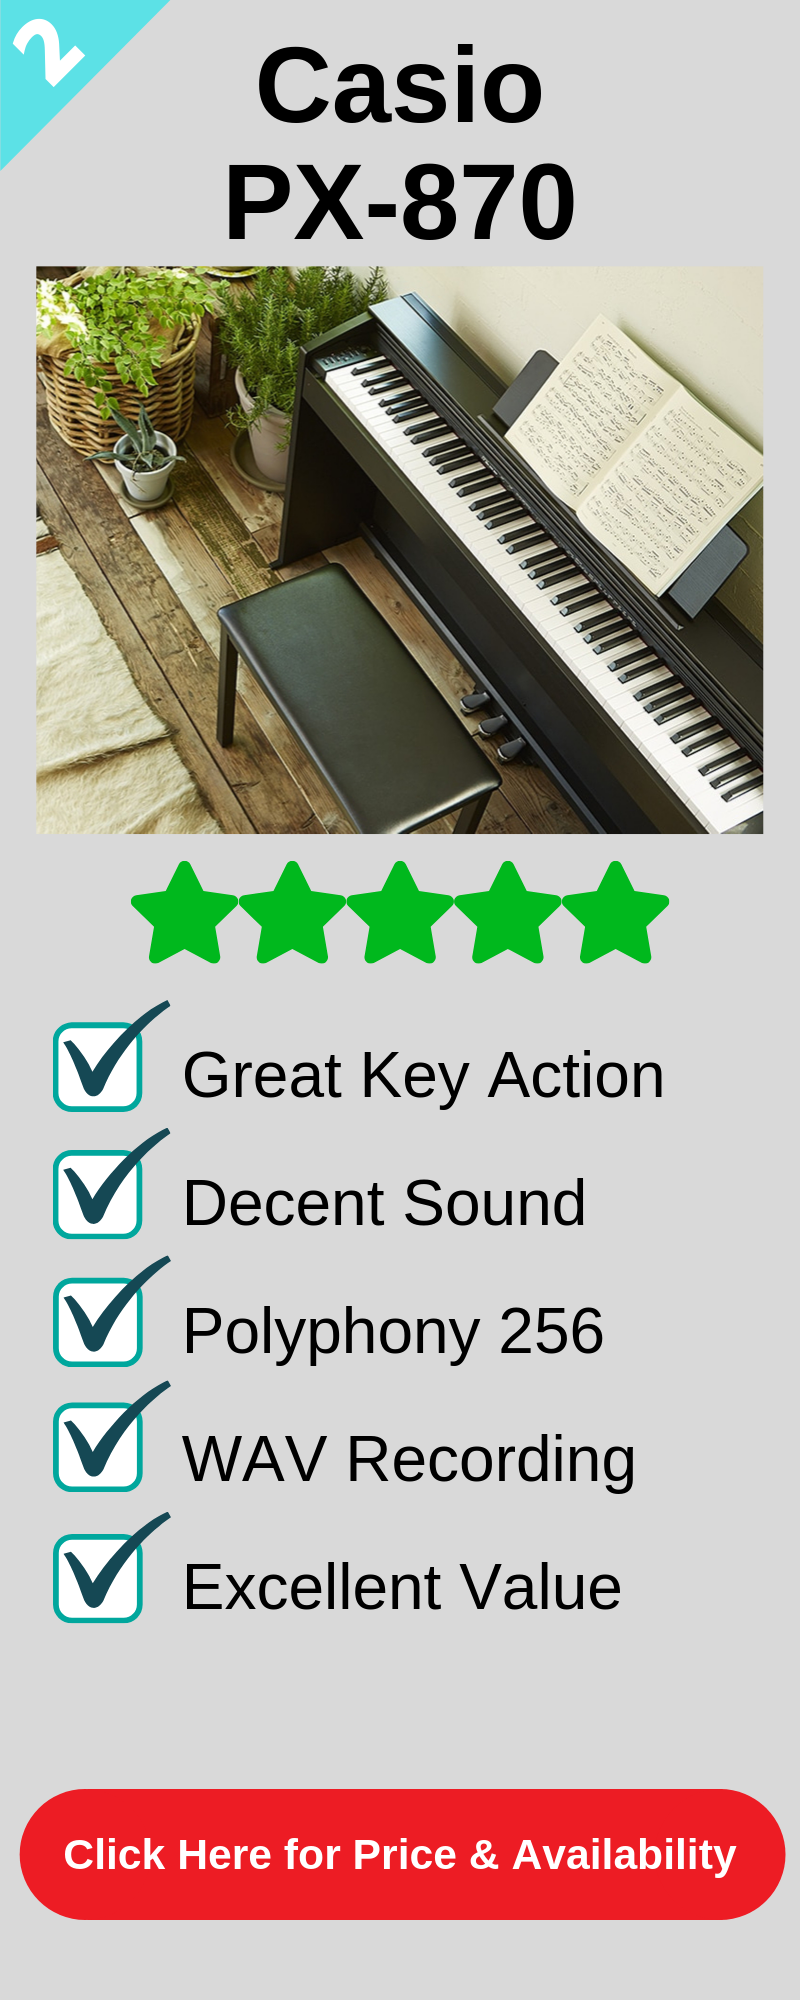 The 2nd best digital piano under 1000 is the Casio PX870